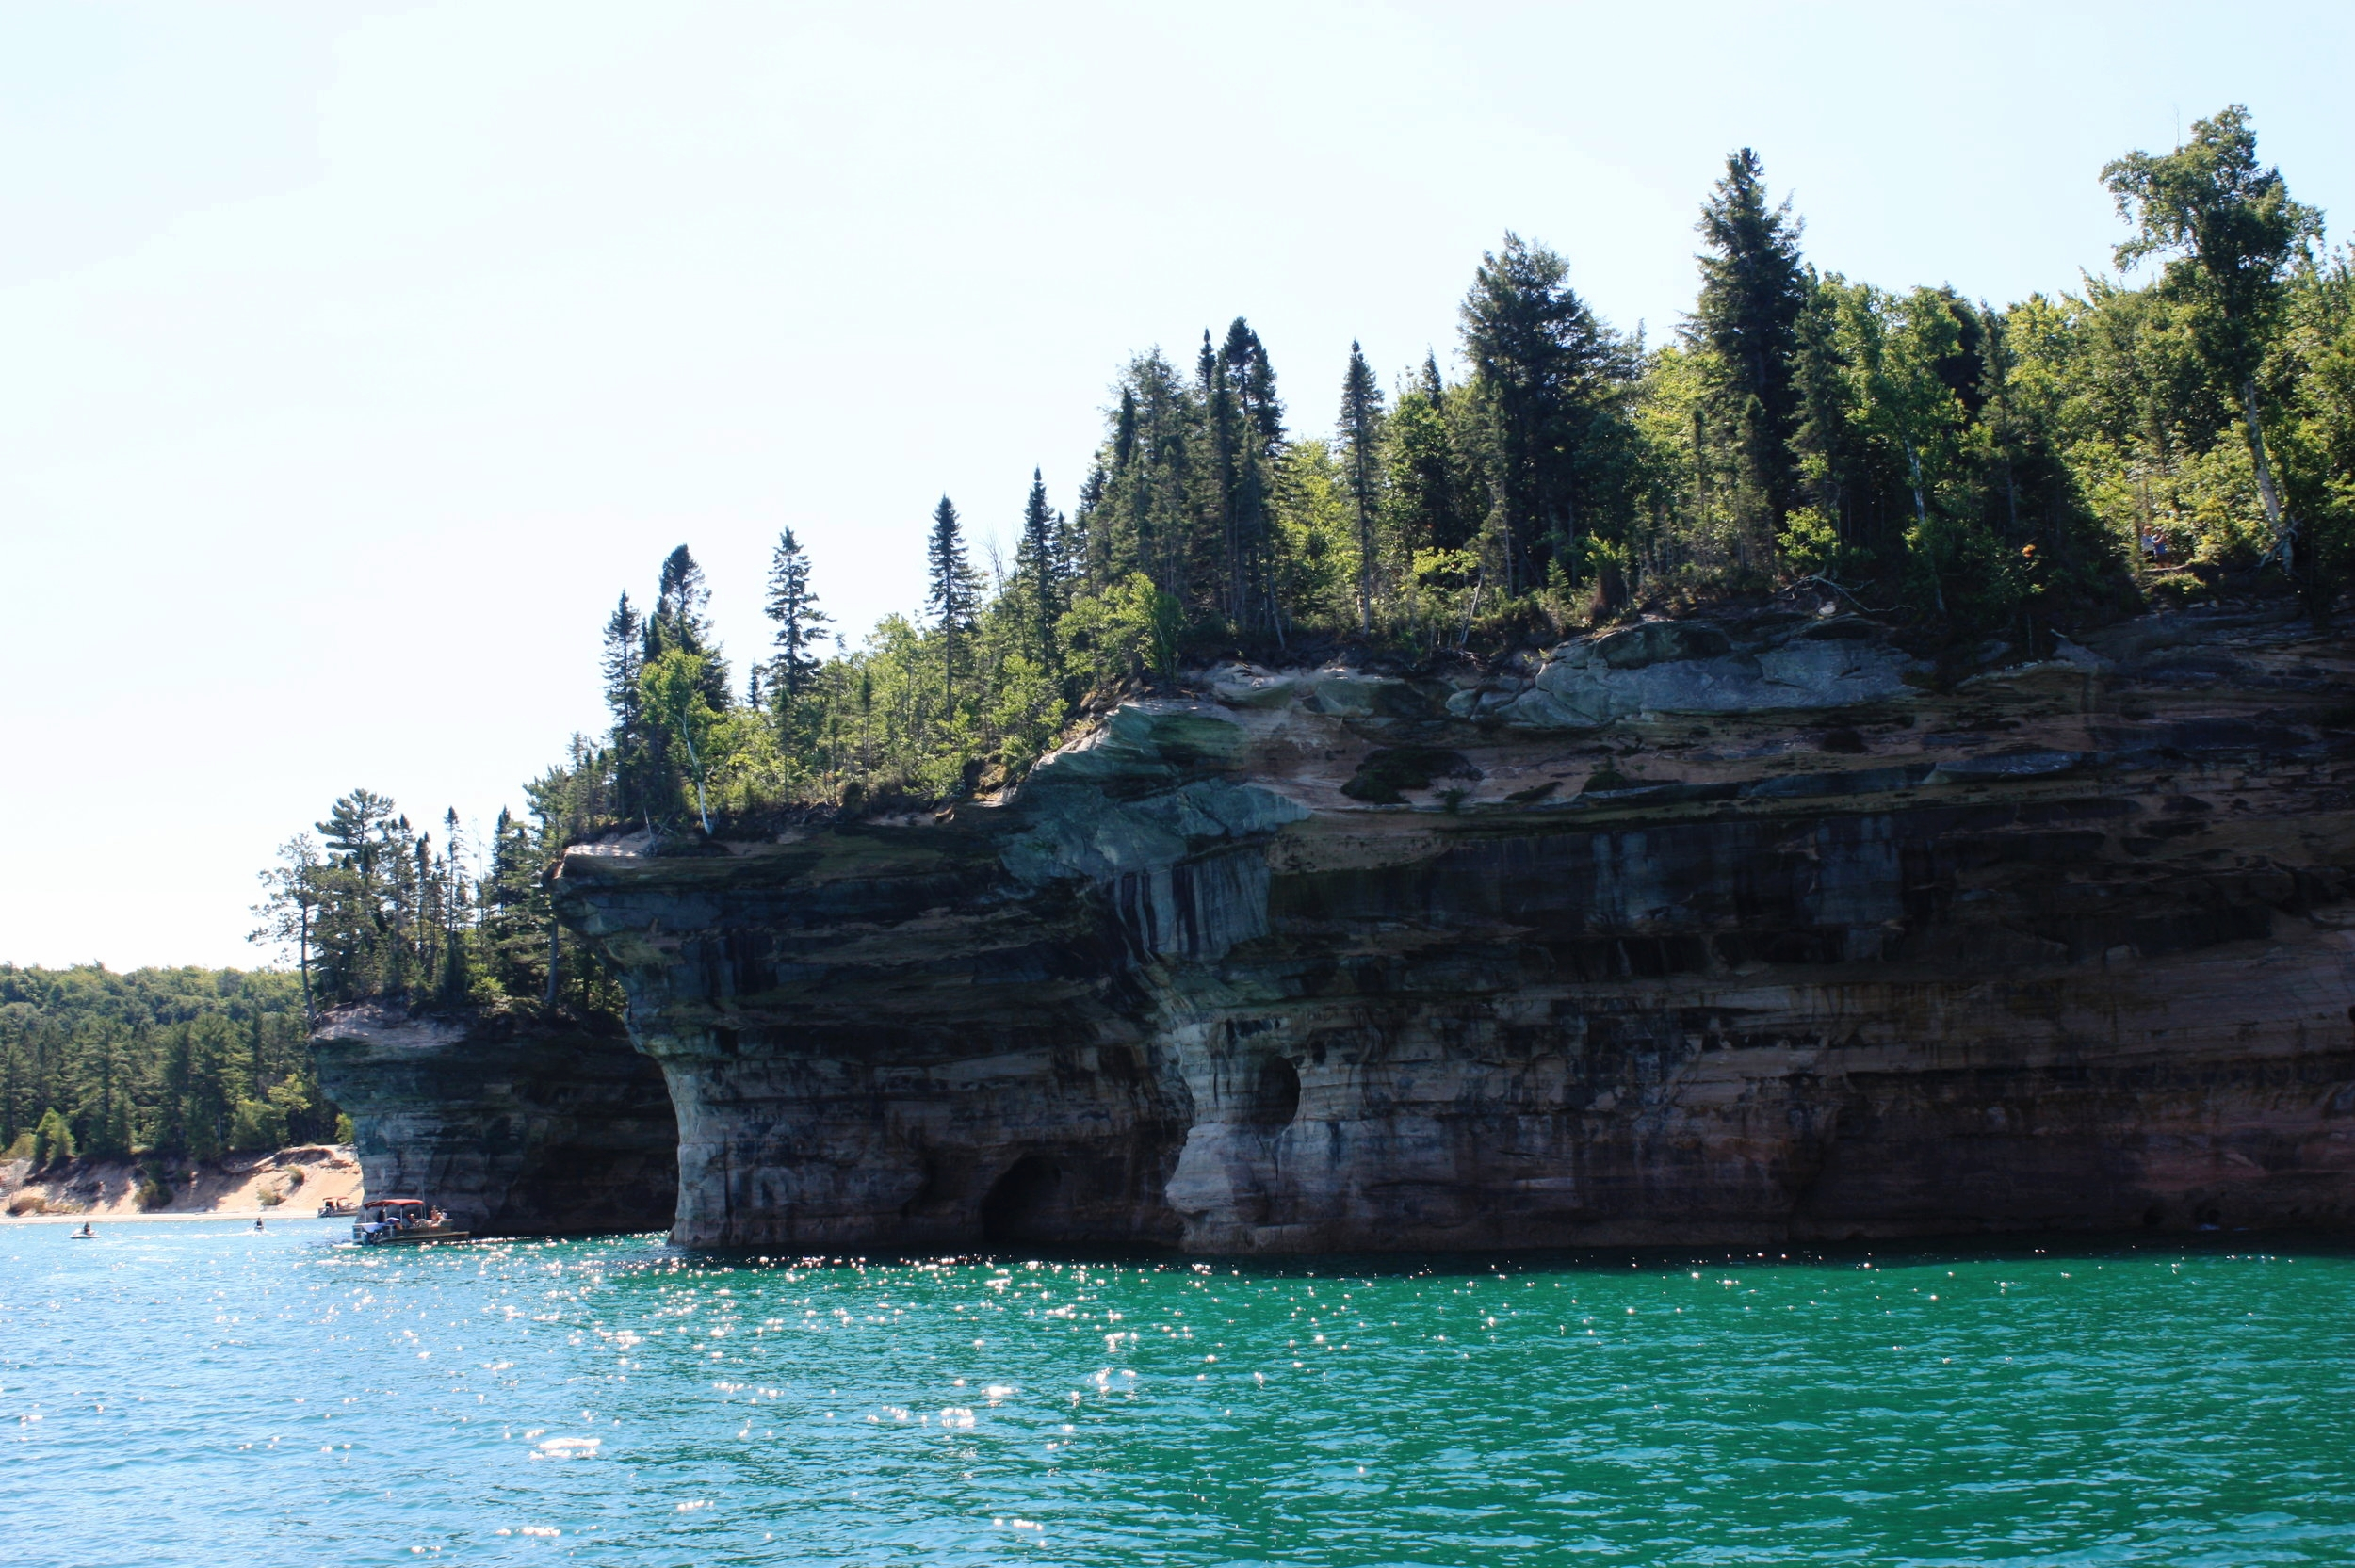 Sticking out like the bows (or sterns?) of ships, these cliffs near  Chapel Beach  are known as Battleship Row. They may be less famous, perhaps, than Miners Castle and some of the other rock formations along the lakeshore, but at least they can hold their heads up high knowing they would completely destroy that puny pontoon in naval warfare.